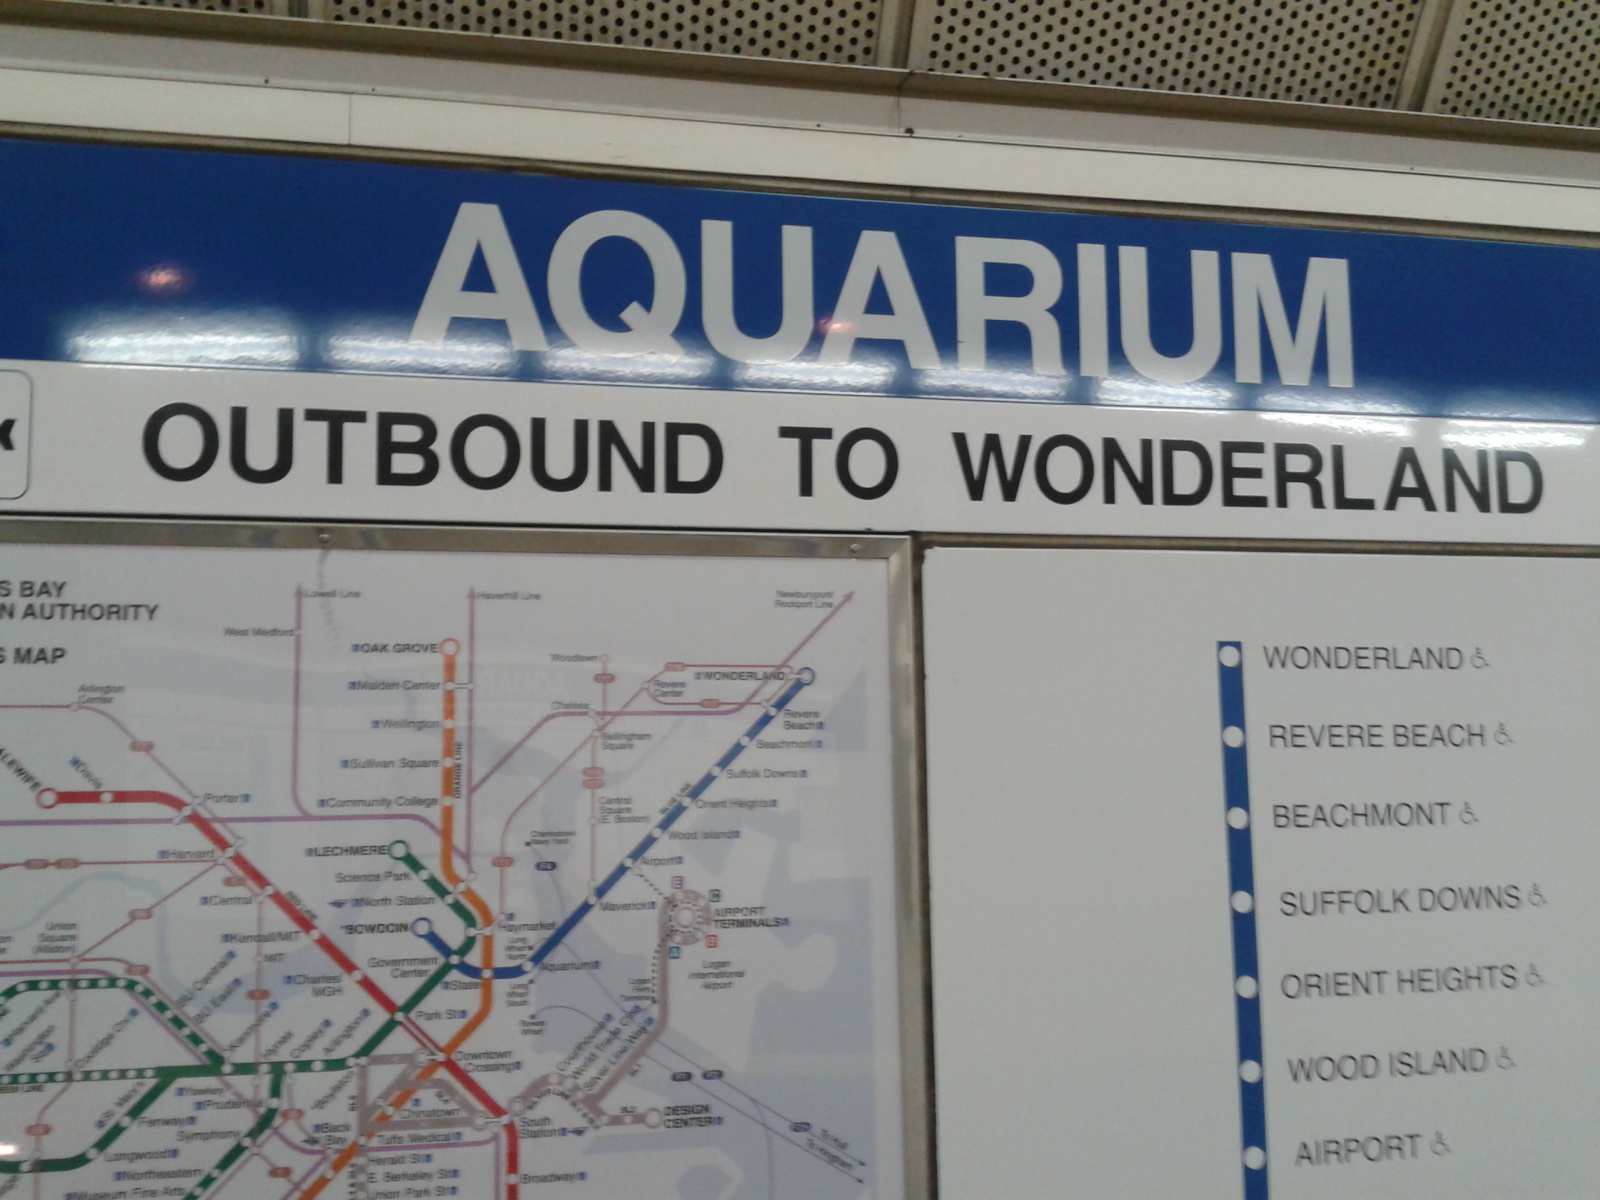 Want to go to Wonderland? No problem in Boston!